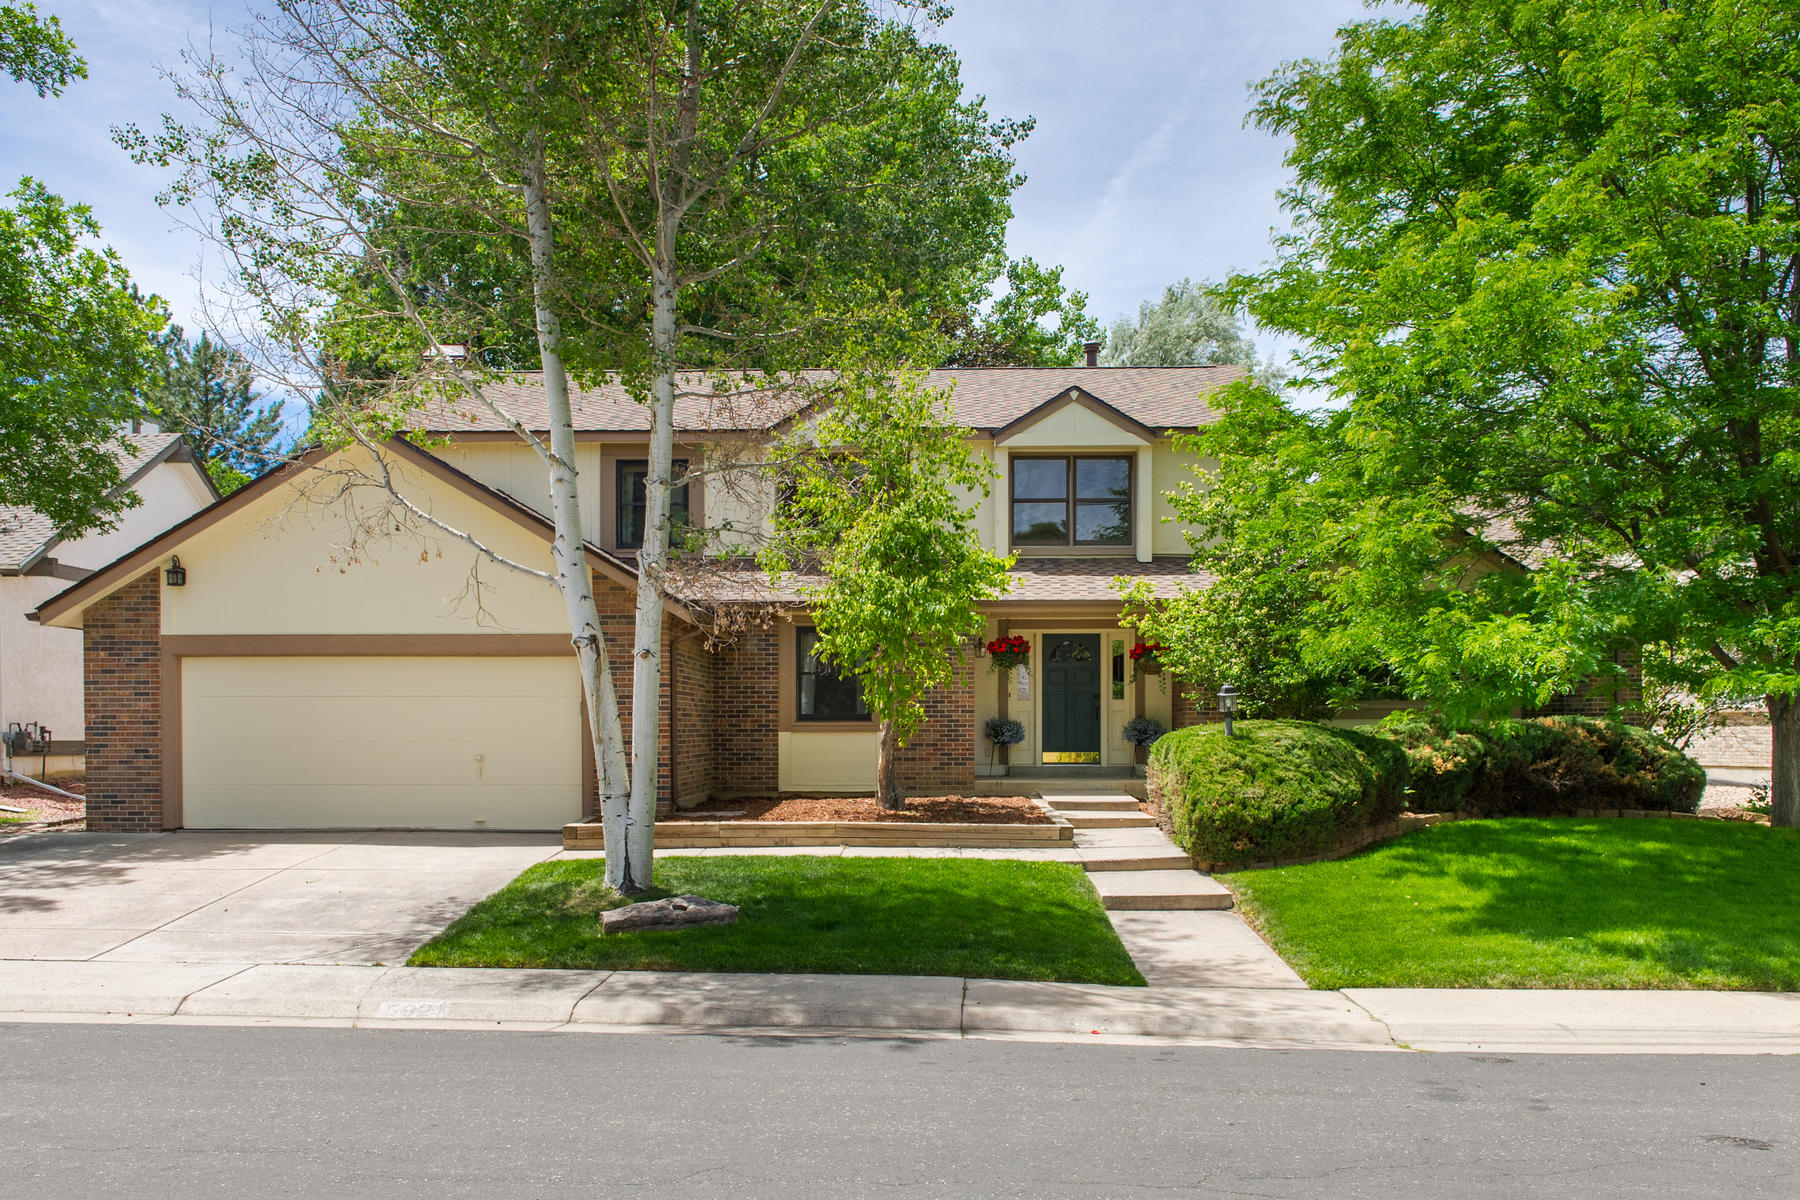 Single Family Home for Sale at 5921 South Akron Way Greenwood Village, Colorado, 80111 United States